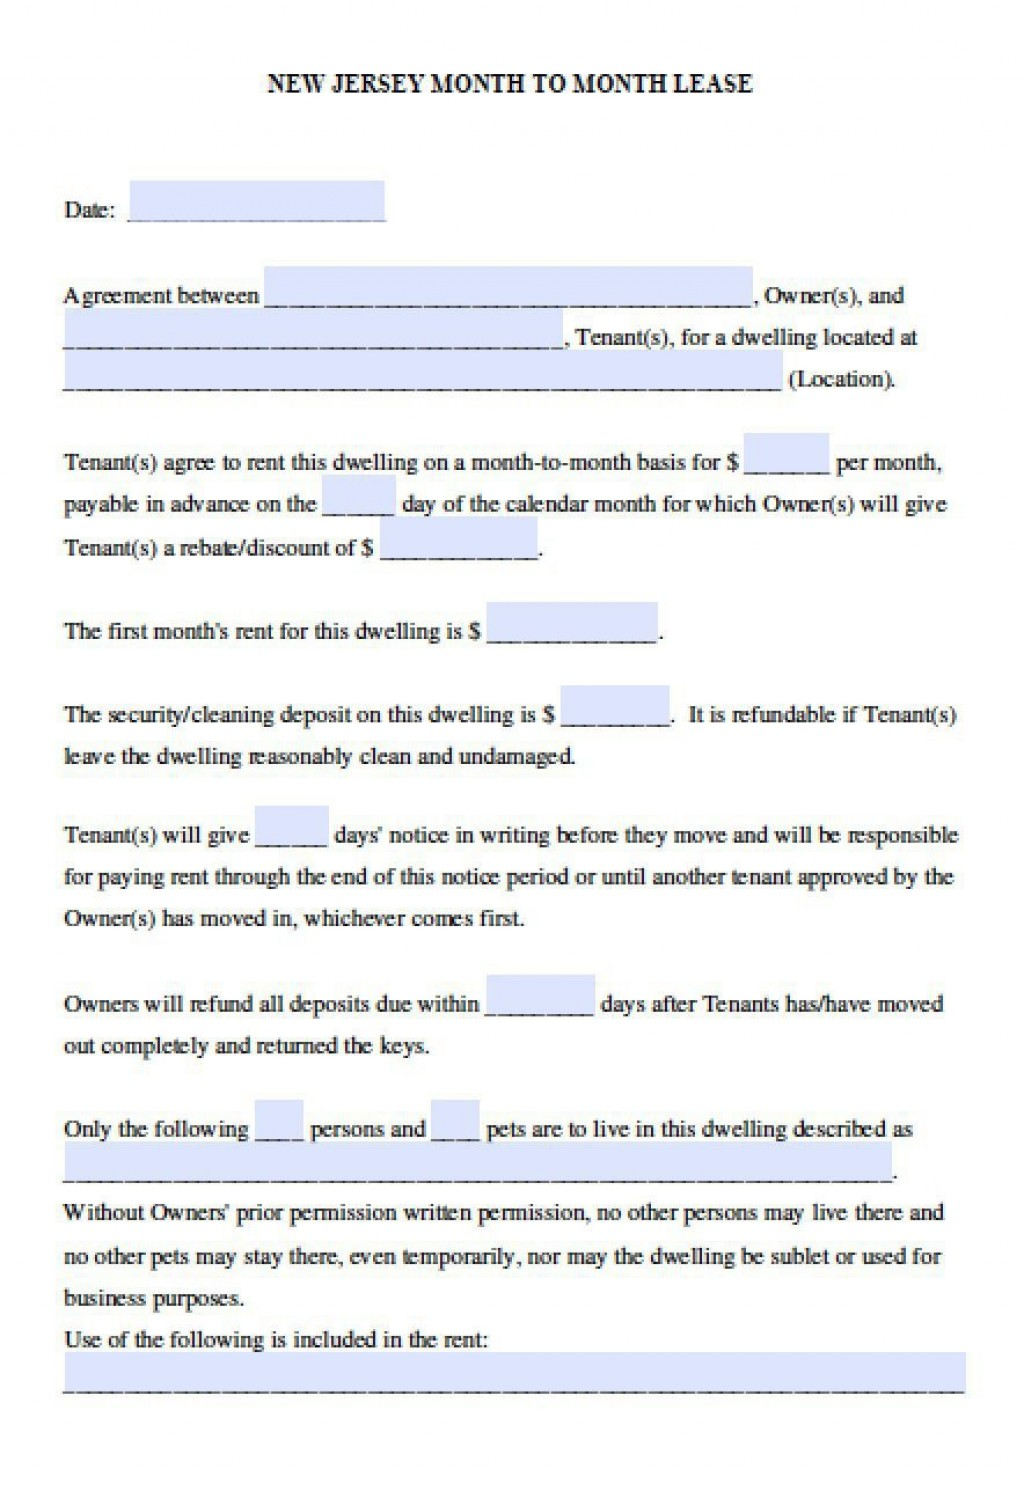 006 Amazing Apartment Lease Agreement Form Nj High Resolution Large